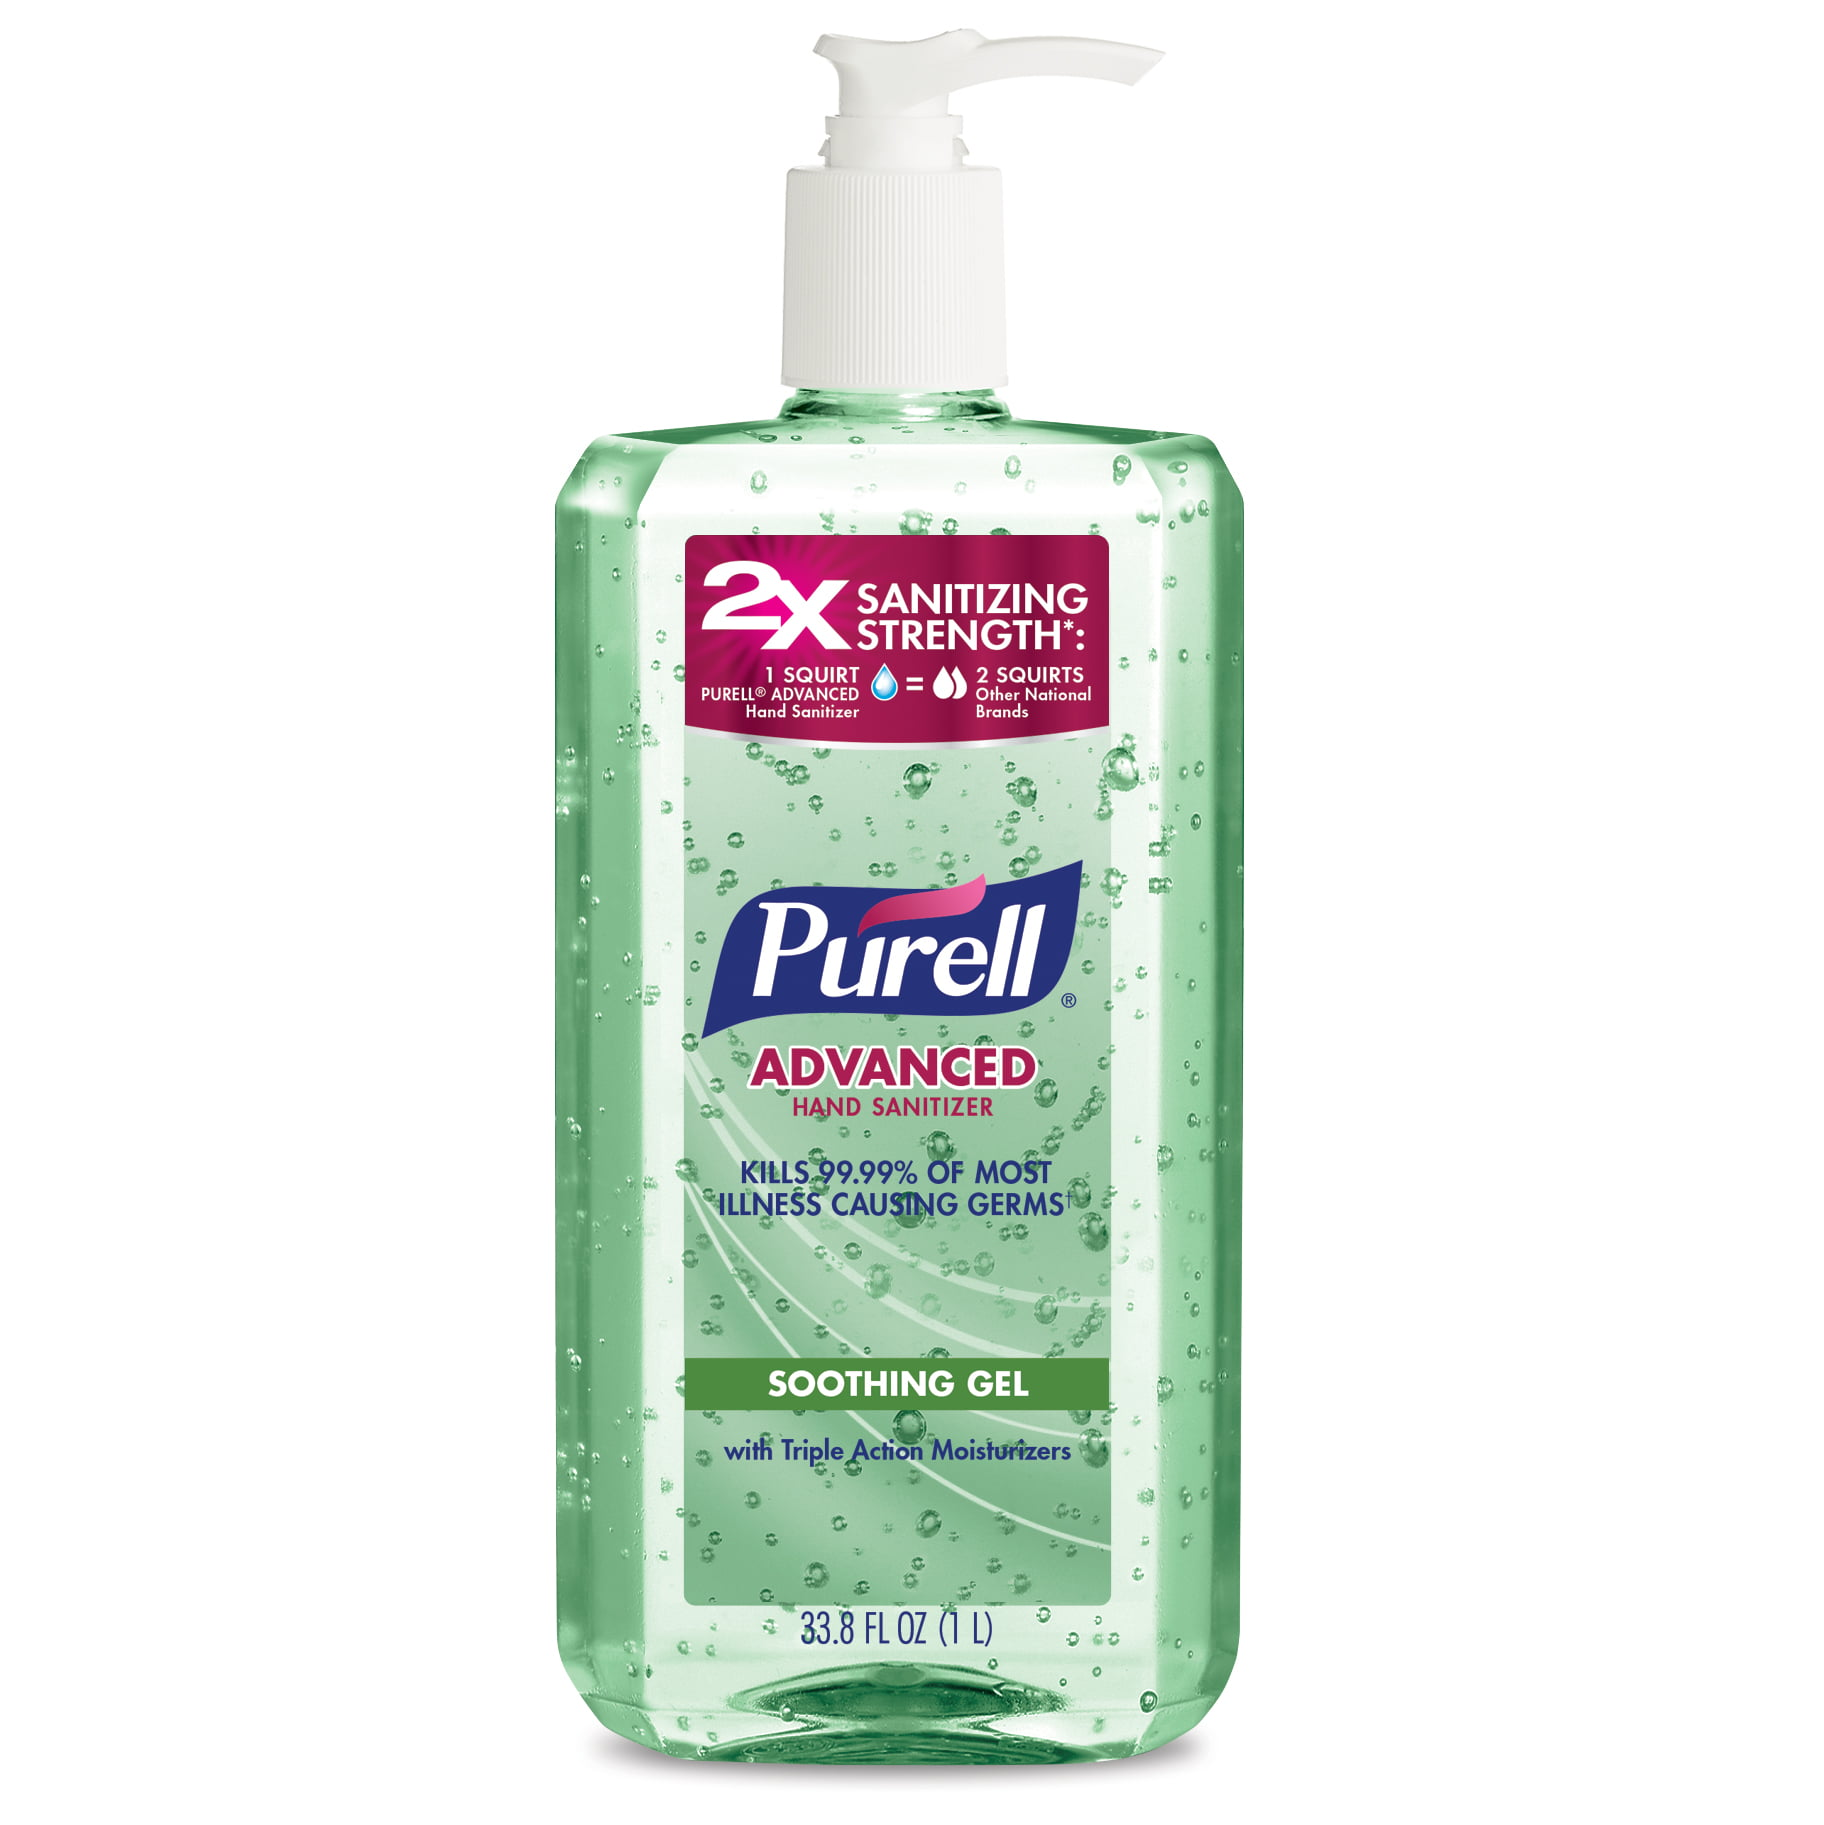 PURELL Advanced Hand Sanitizer Soothing Gel, Fresh scent, with Aloe and Vitamin E- 1 Liter pump bottle